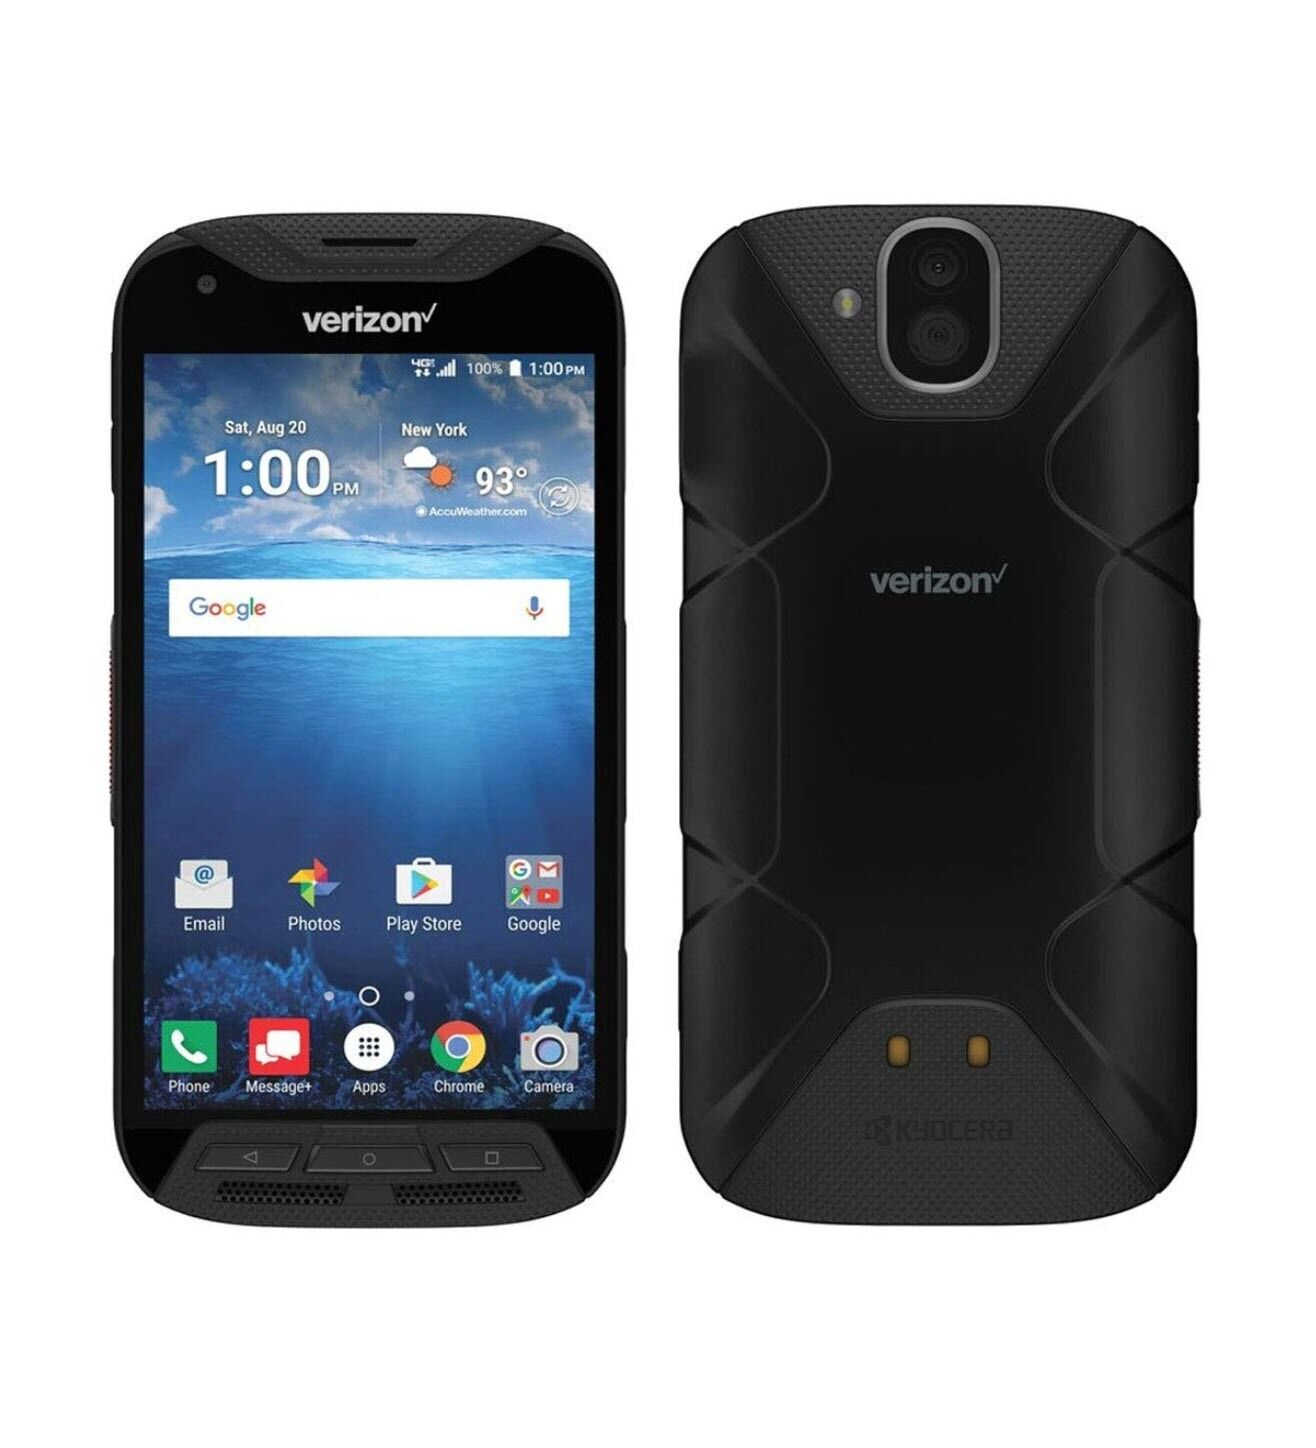 Android Phone - NEW Kyocera DuraForce PRO E6810 32GB Black Verizon 4G Unlocked Android Rugged